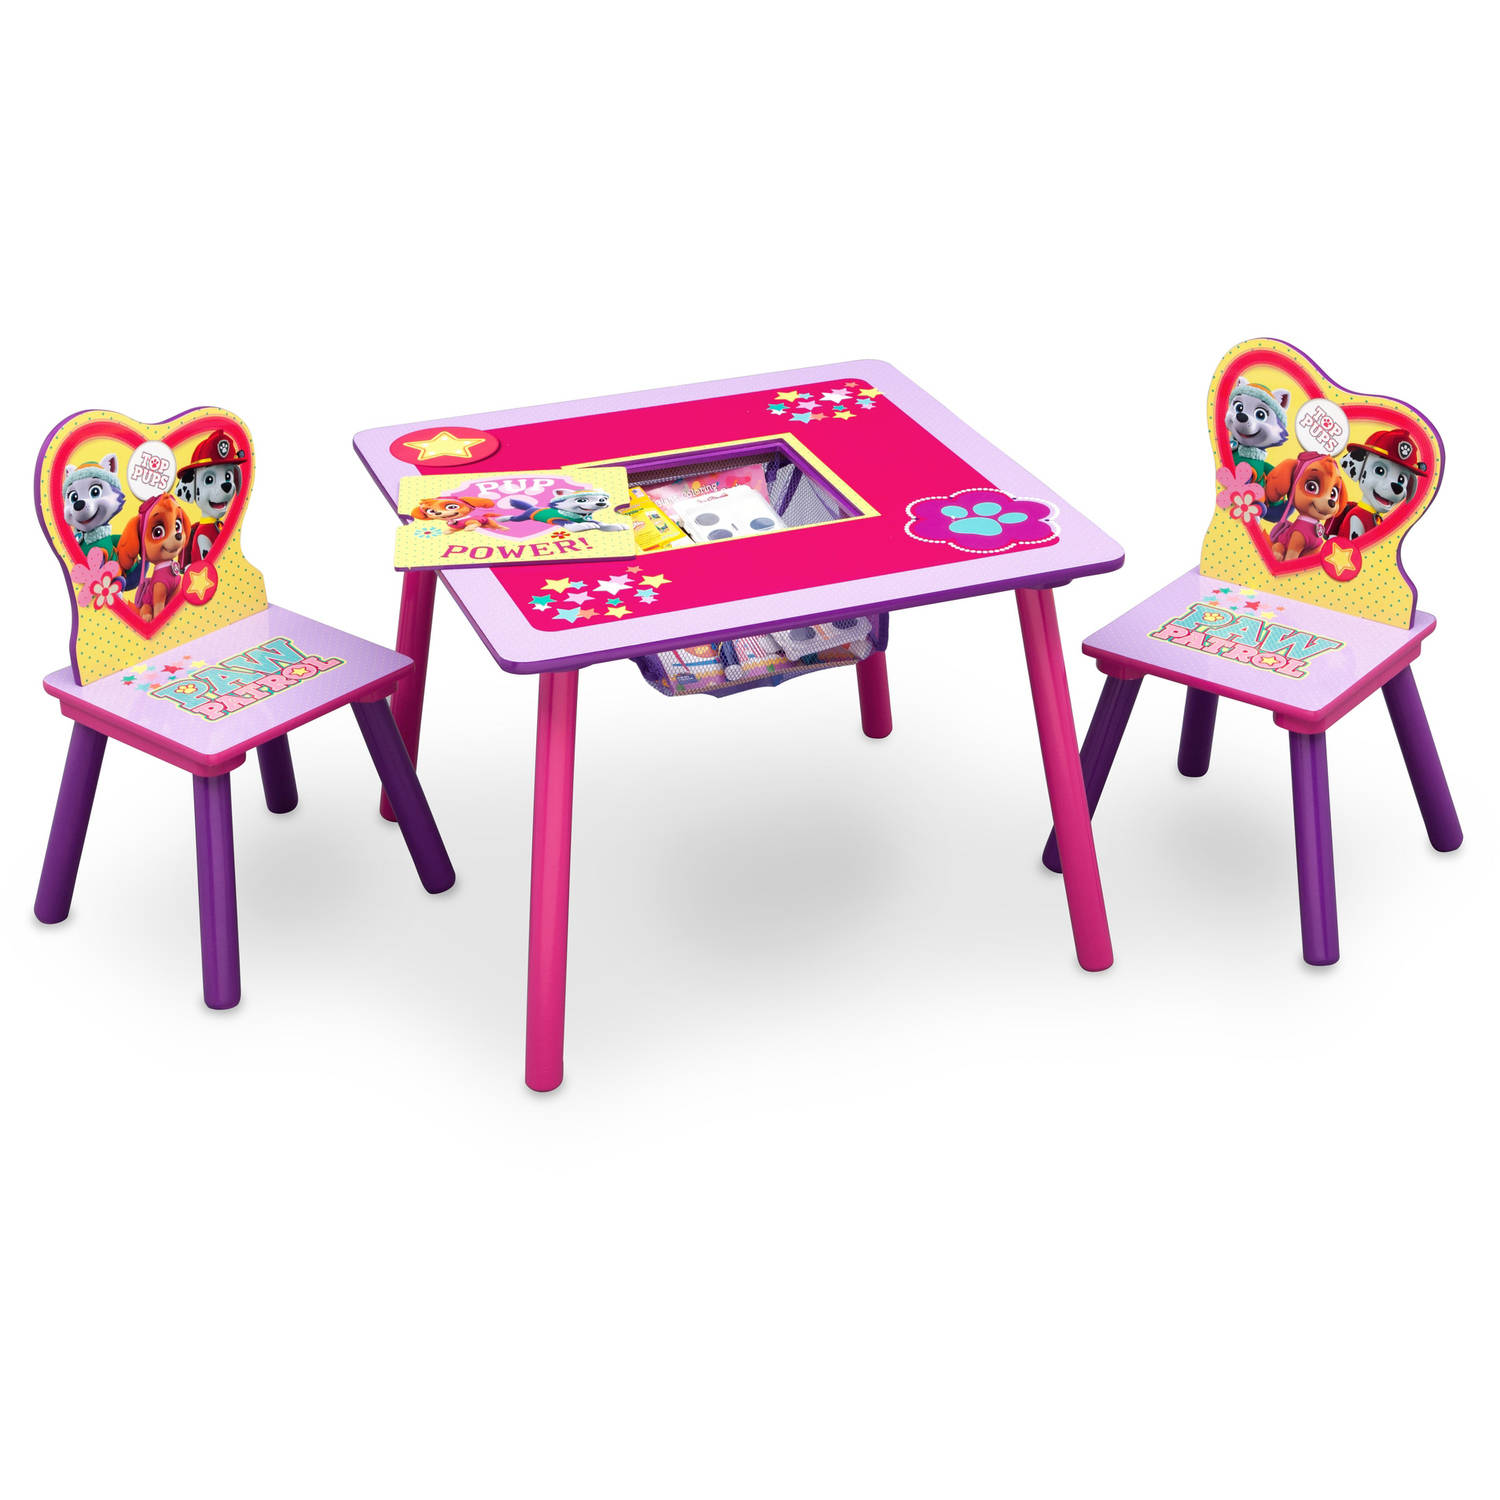 Paw Patrol Skye and Everest Toddler Table and Chair Set with Storage  sc 1 st  Walmart & Toddler Tables u0026 Chairs - Walmart.com